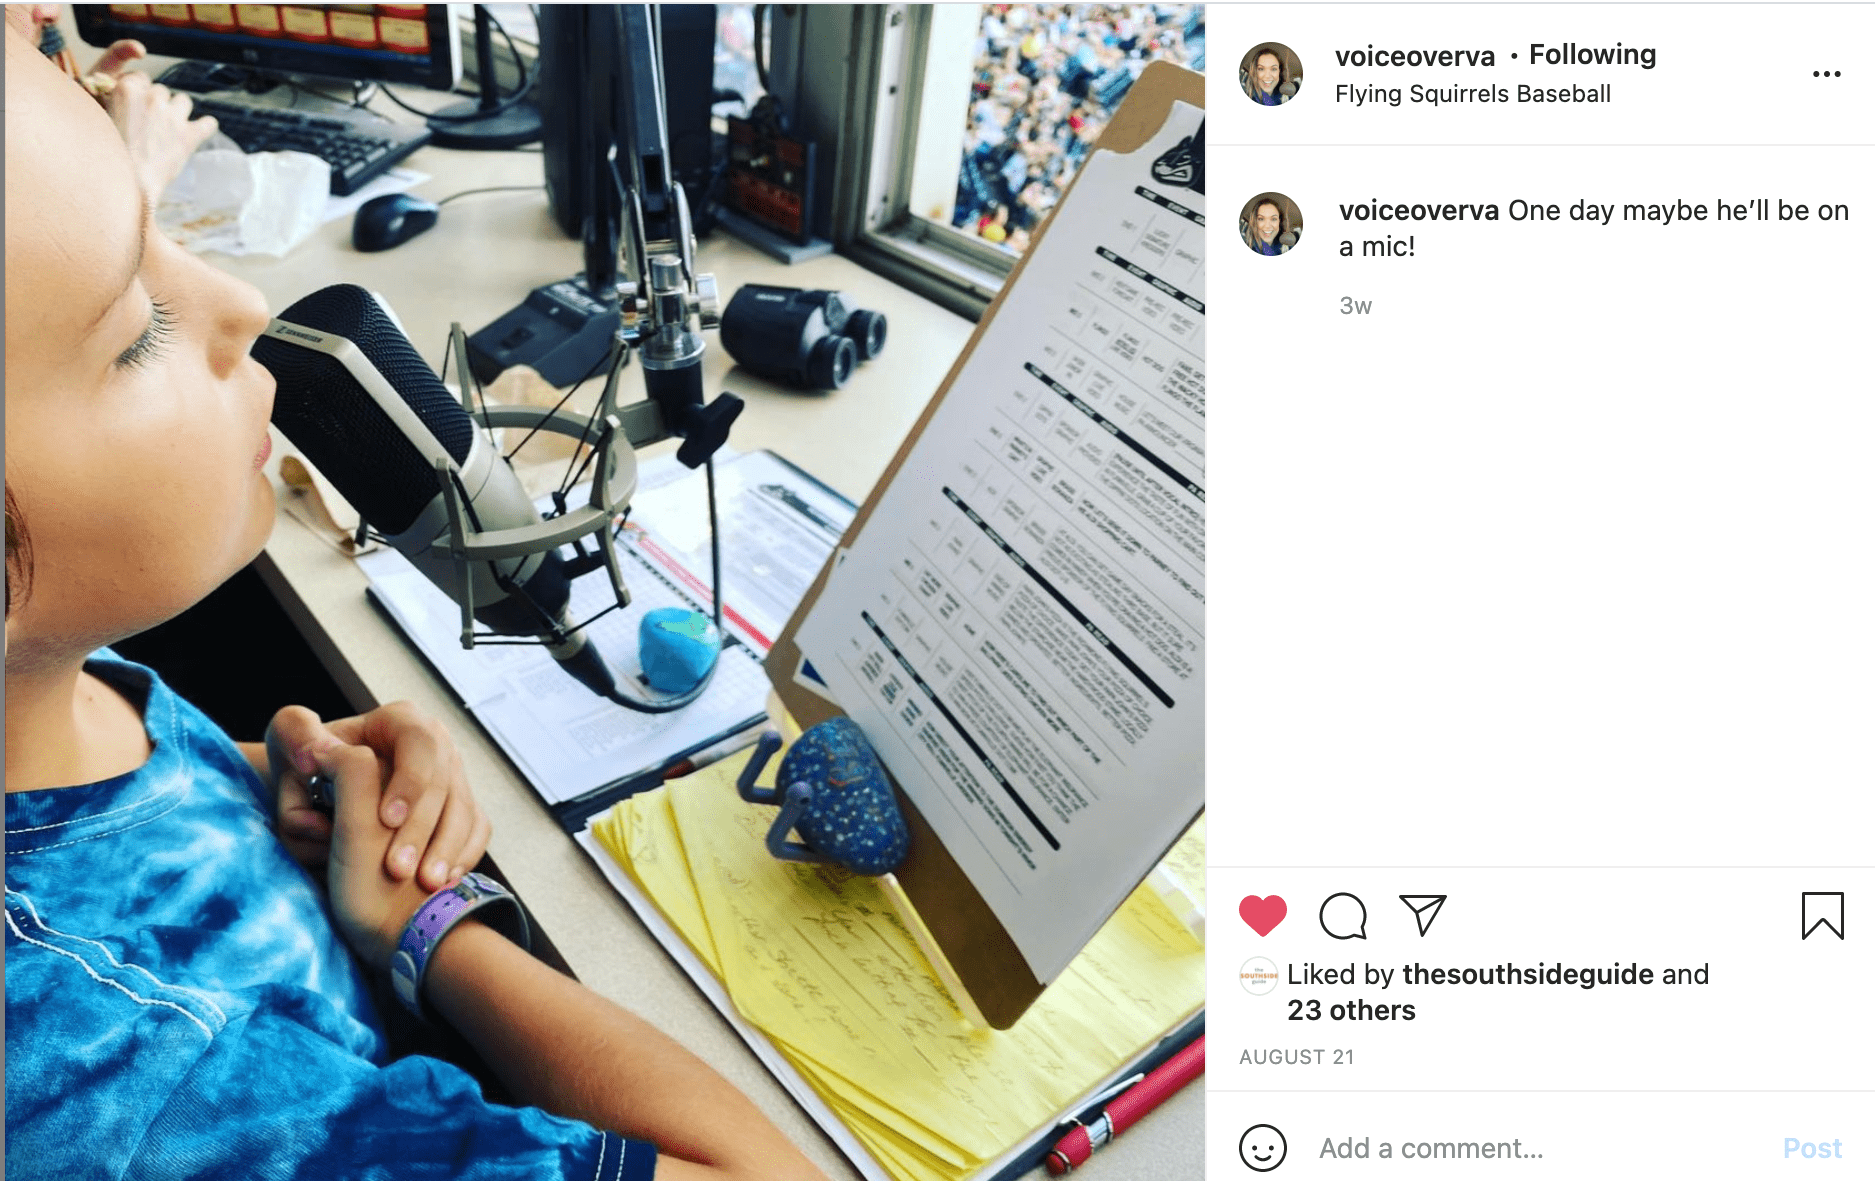 Insta post of Trace, Bianca's son, speaking at the Squirrels game